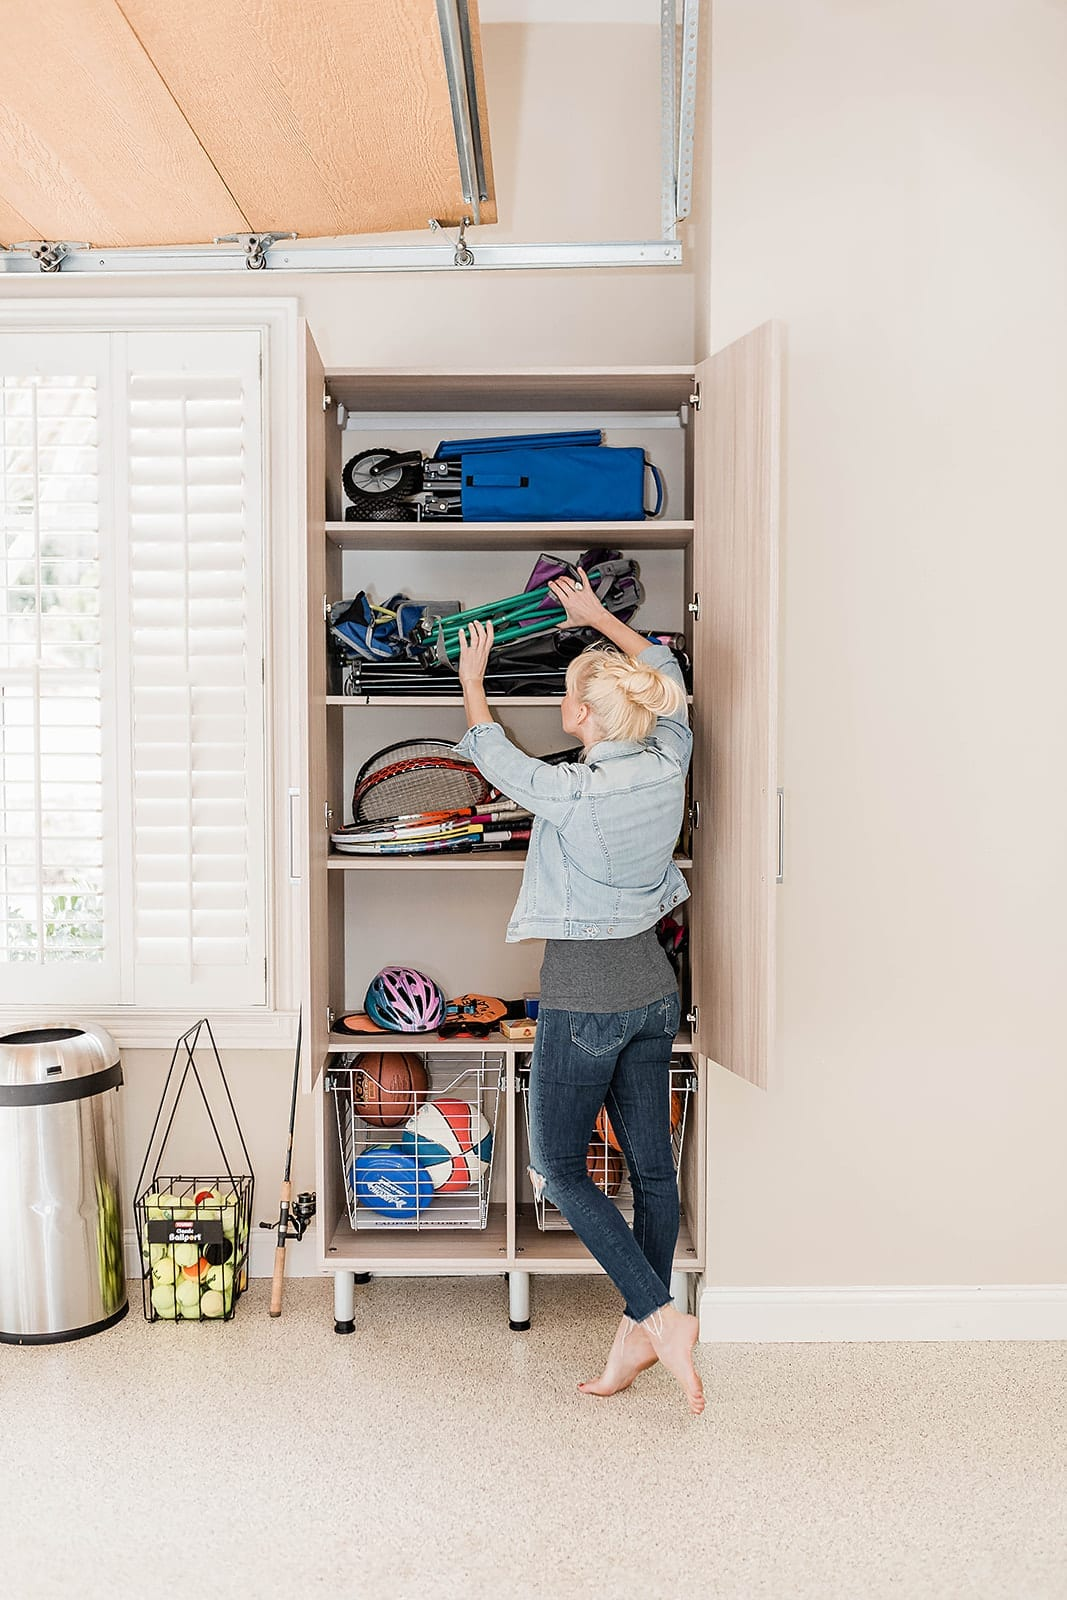 Garage organization cabinets made by California Closets. Tips for building custom cabinetry for organizing your garage.